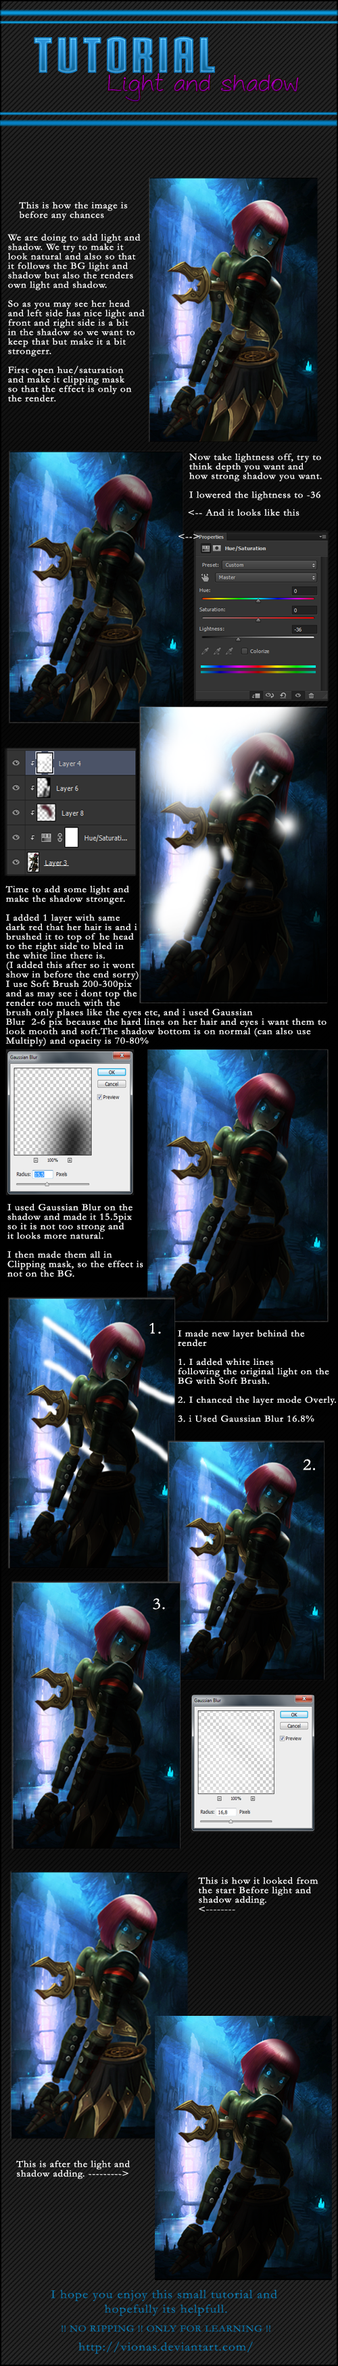 Light and Shadow Tutorial by Vionas